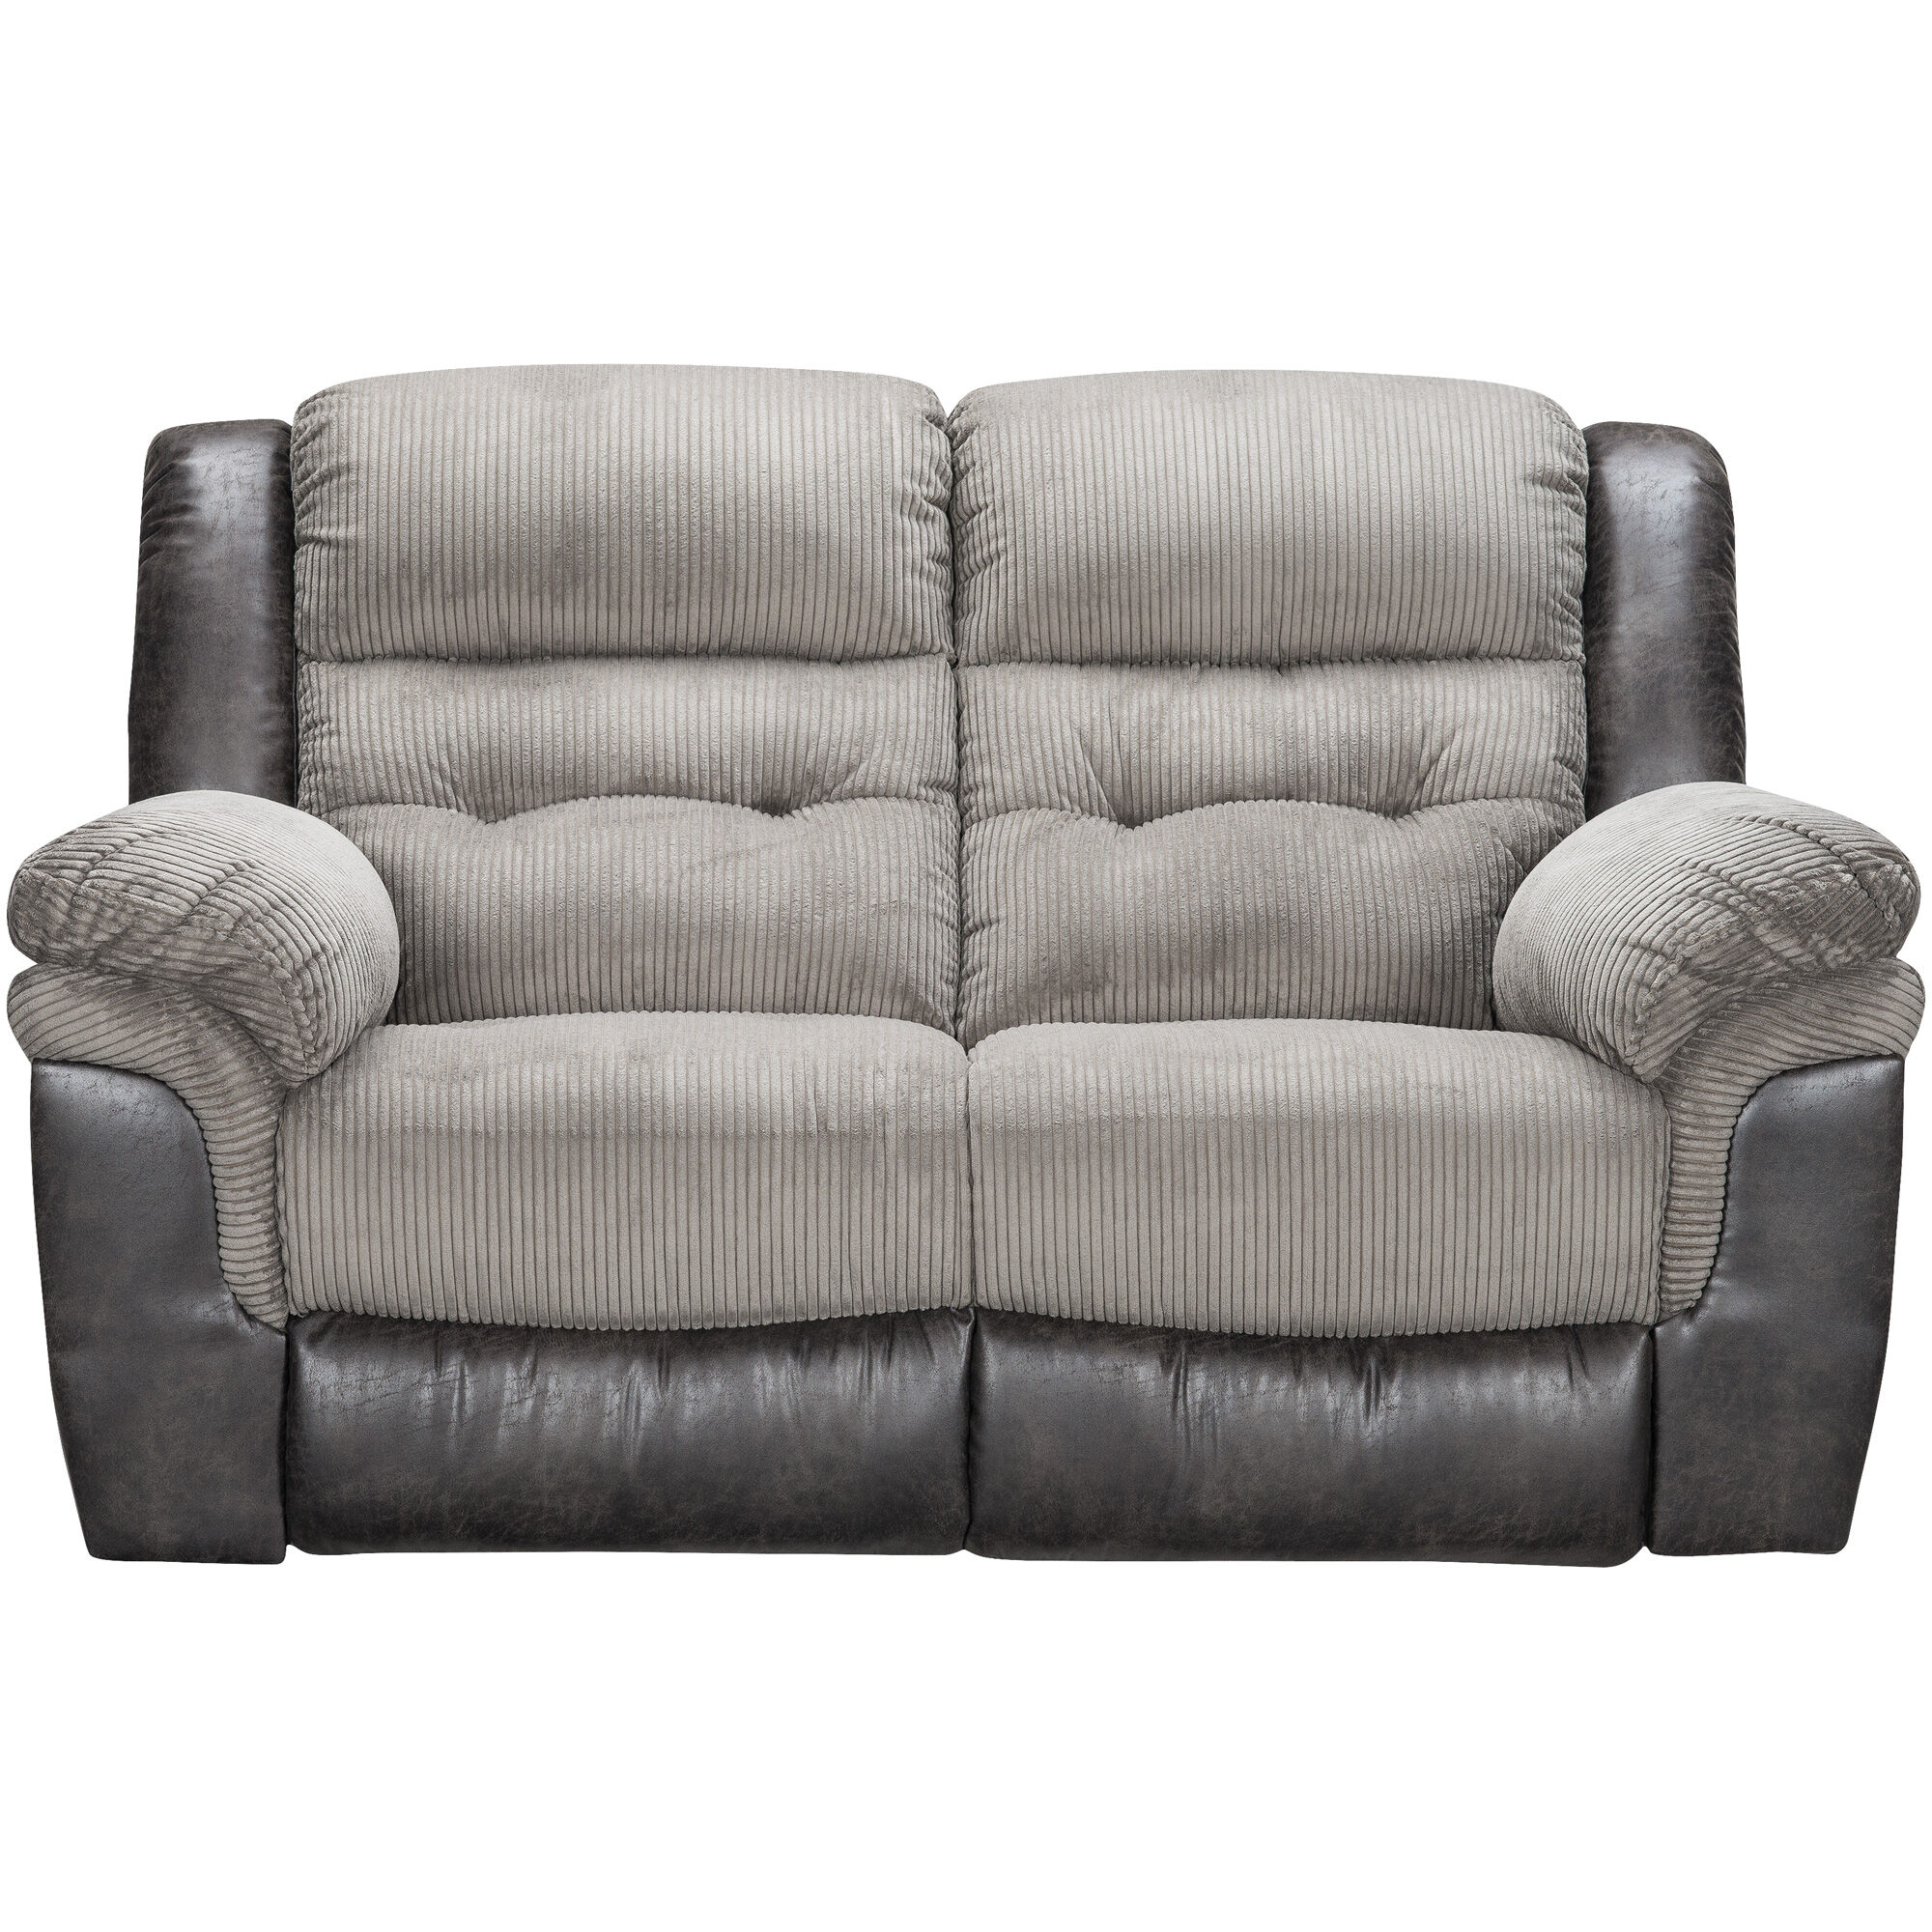 Slumberland Furniture Clearance Dunkirk Reclining Loveseat